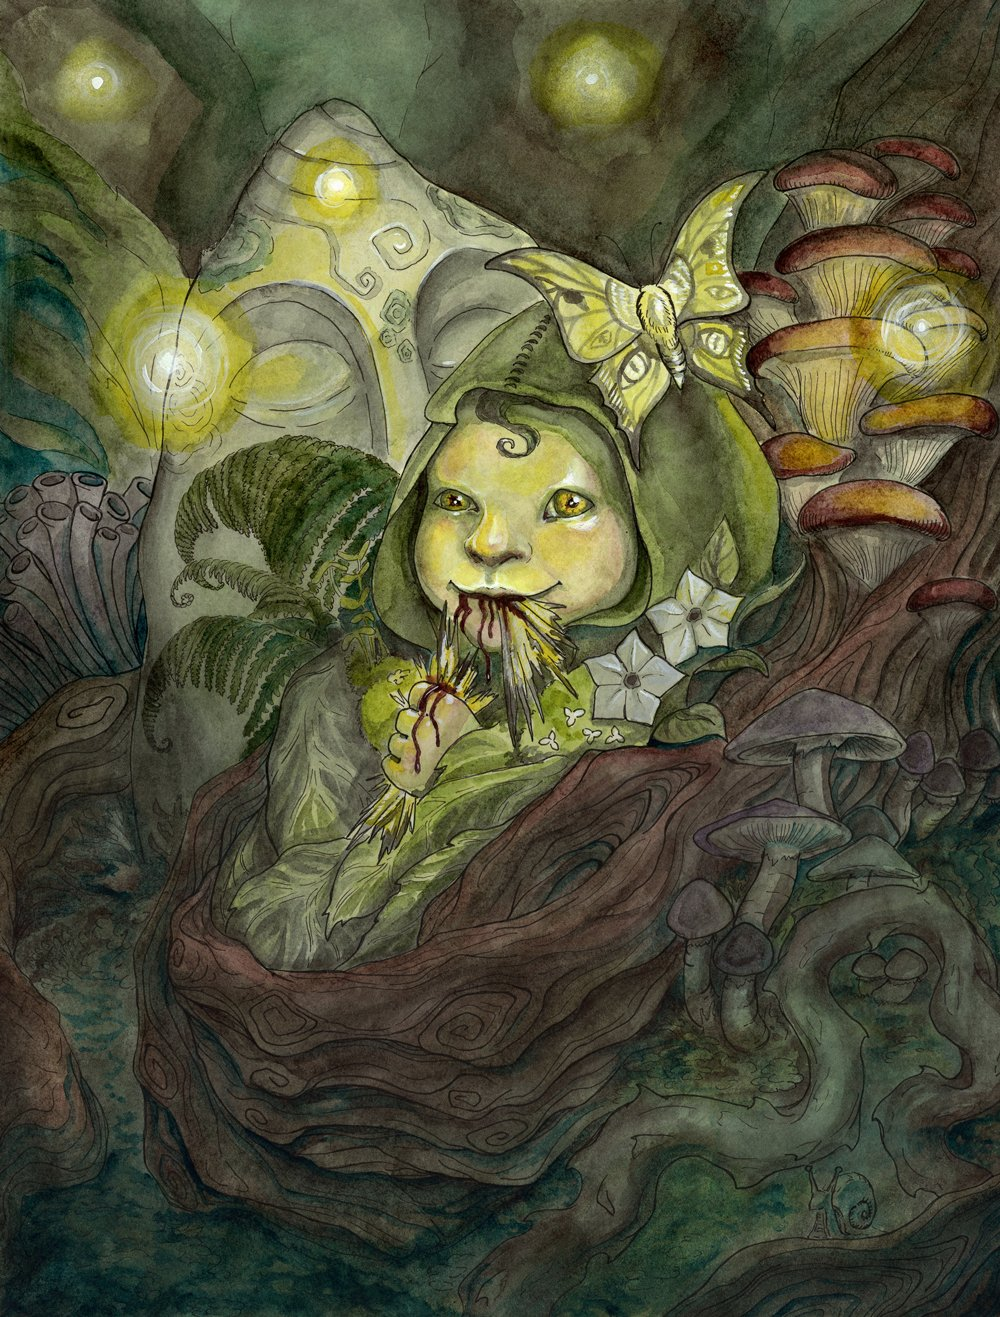 - ChangelingGame art for the Olde Fae card gamePublisher: The Changeling Artist Collective